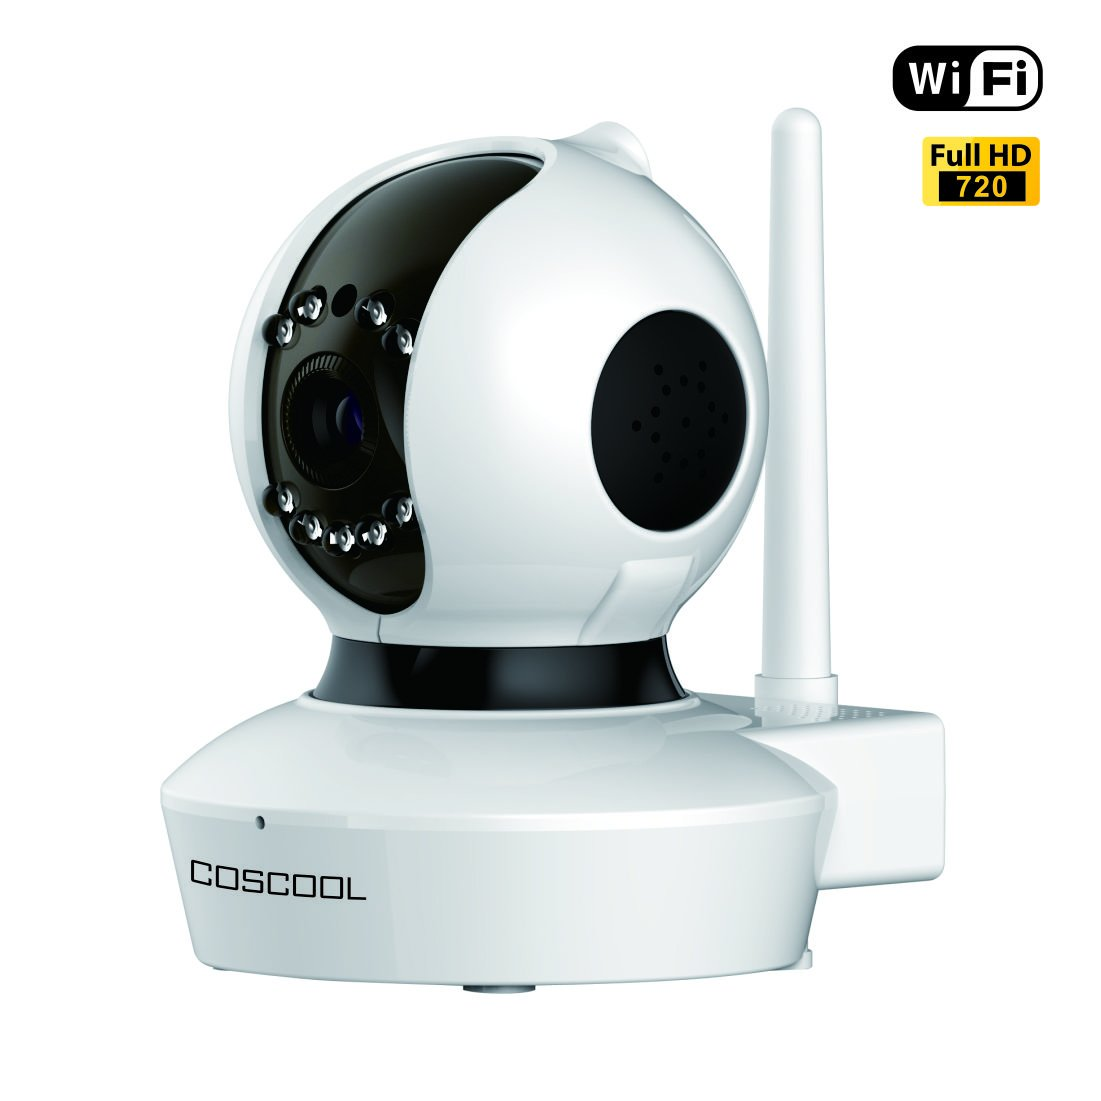 CosCool IP Camera 720P Wireless Wifi Surveillance Camera Network Security Webcam Microphone Inside Two Way Audio Onekey Wifi Fast Setting Night Vision ONIVF Pan Tilt Movement Baby Pet Video Monitor